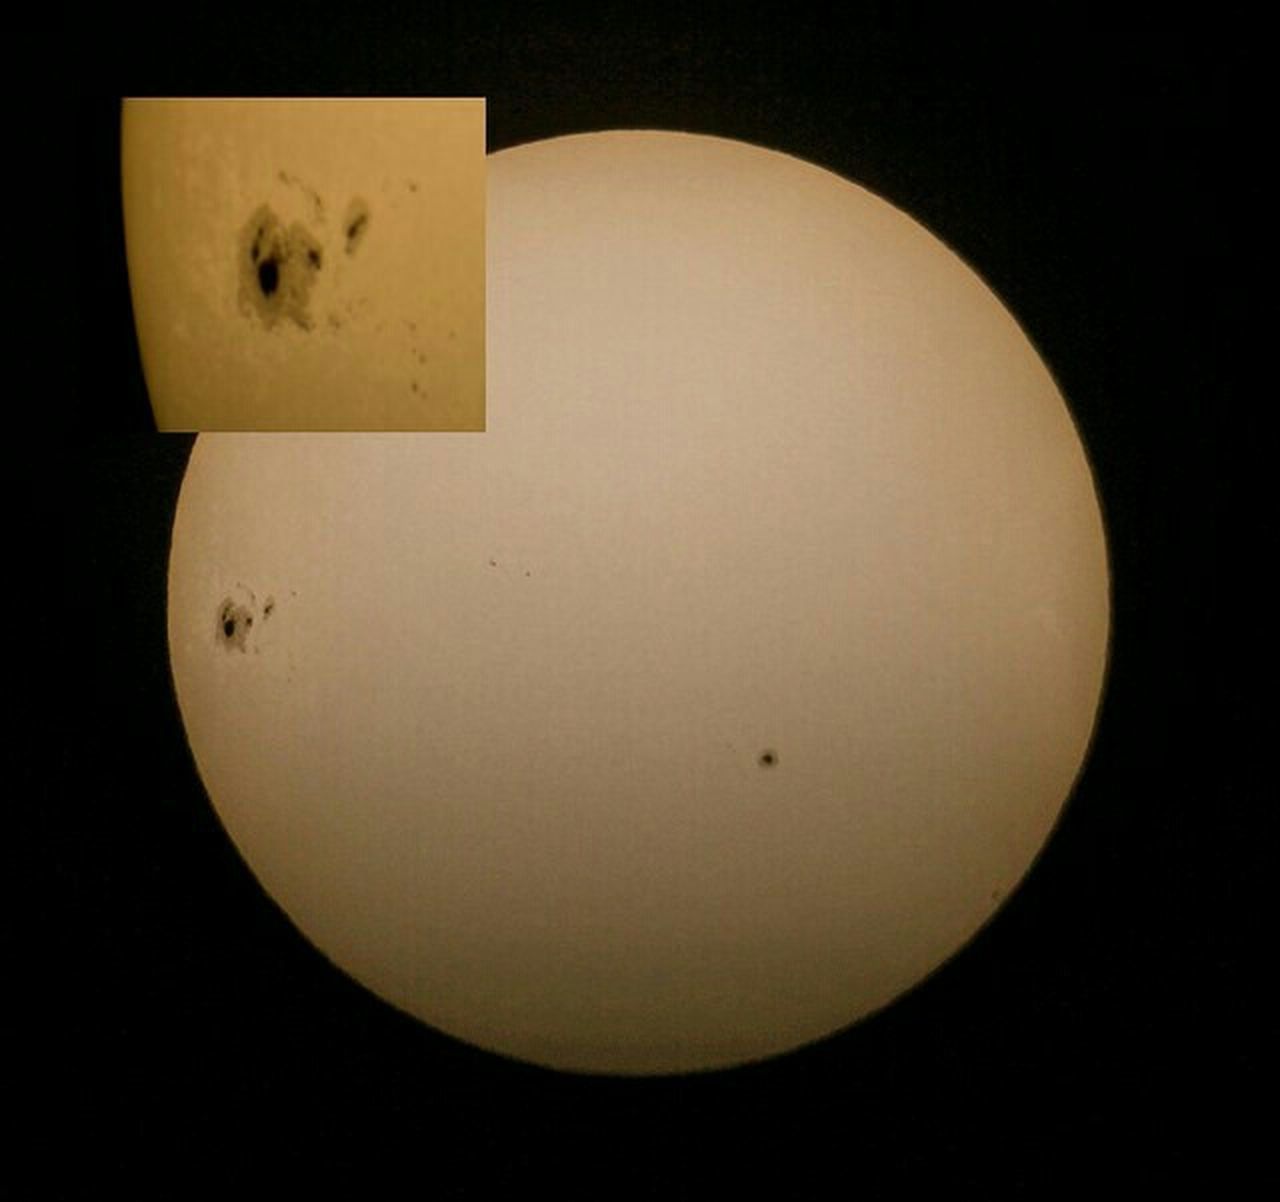 The Sun Sol Mark_huntr FlickrSunspots Sunspot Astronomy Astrophotography Telescope NEQ6 QUATTRO 8